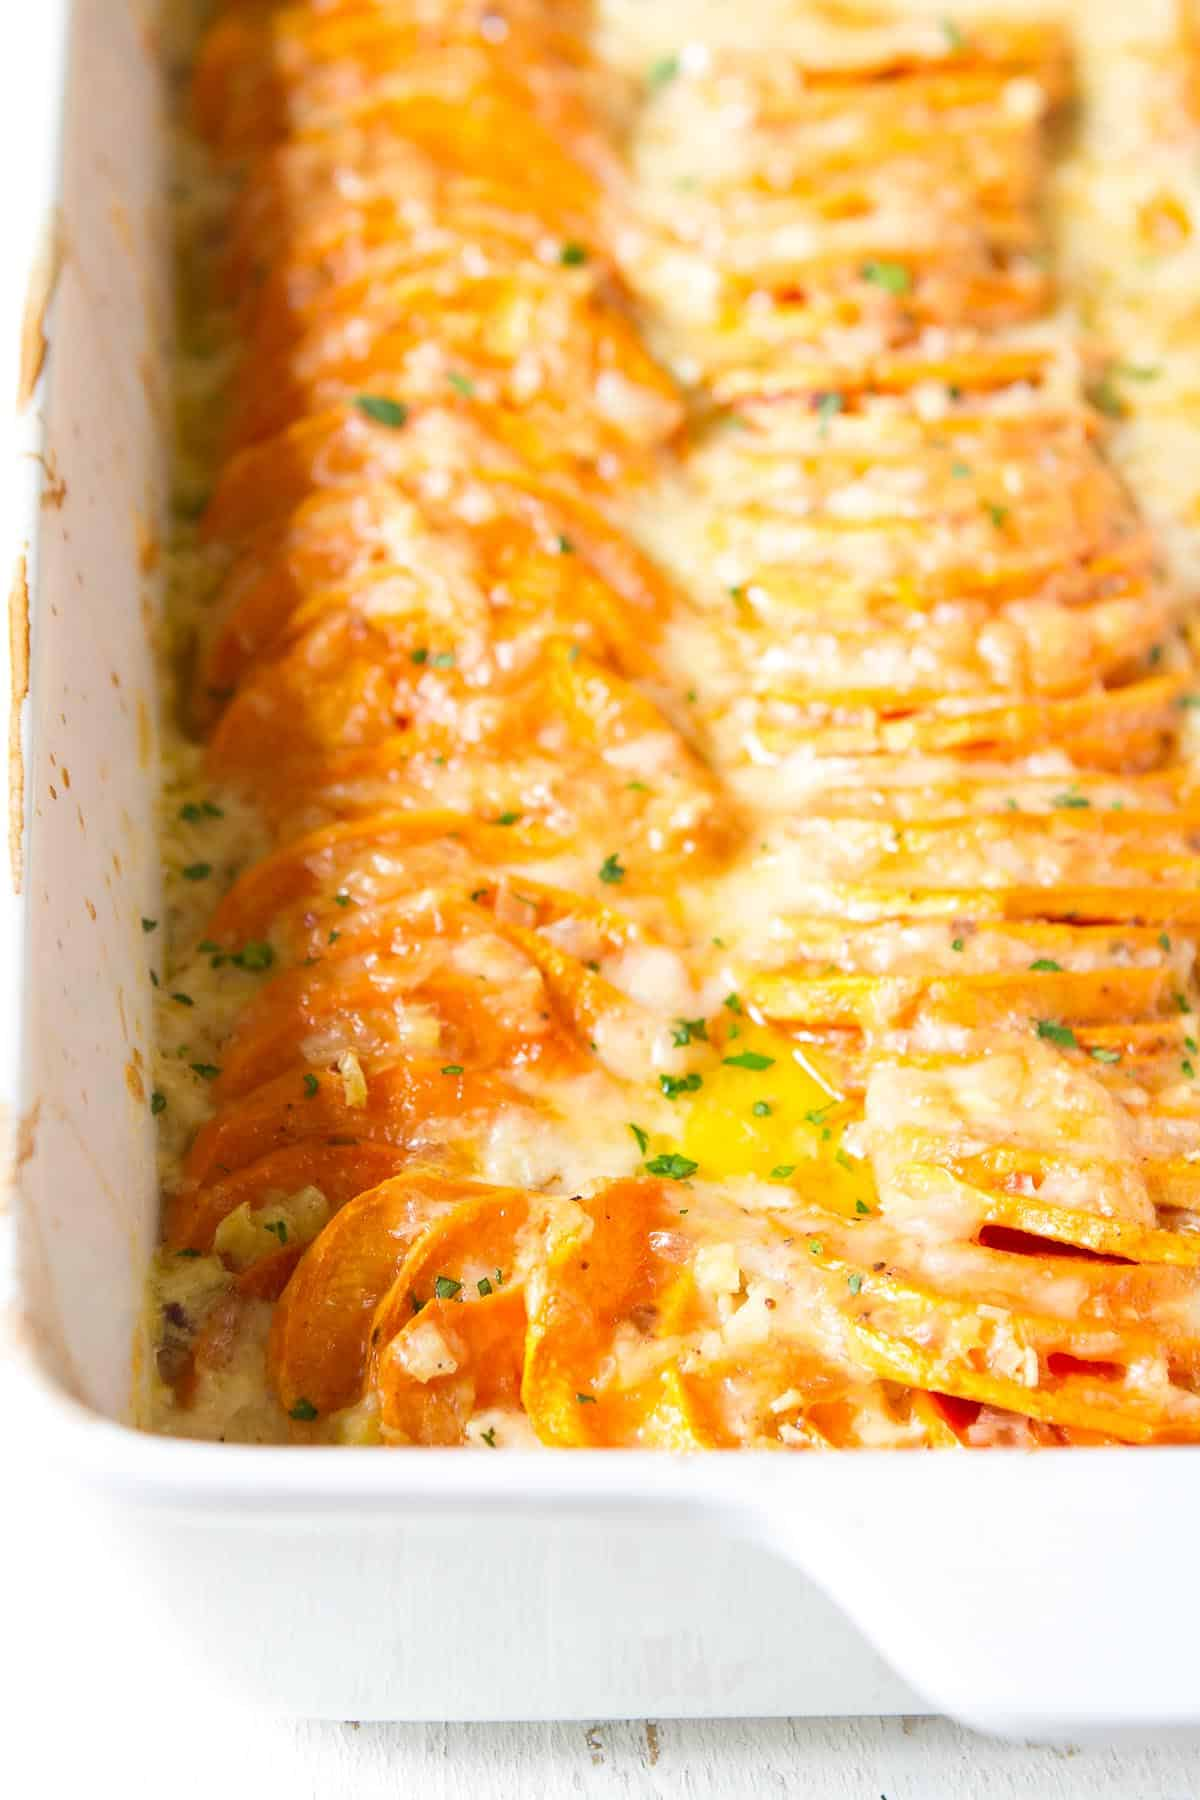 Rows of cooked sweet potatoes, topped with cheese sauce and melted cheese.